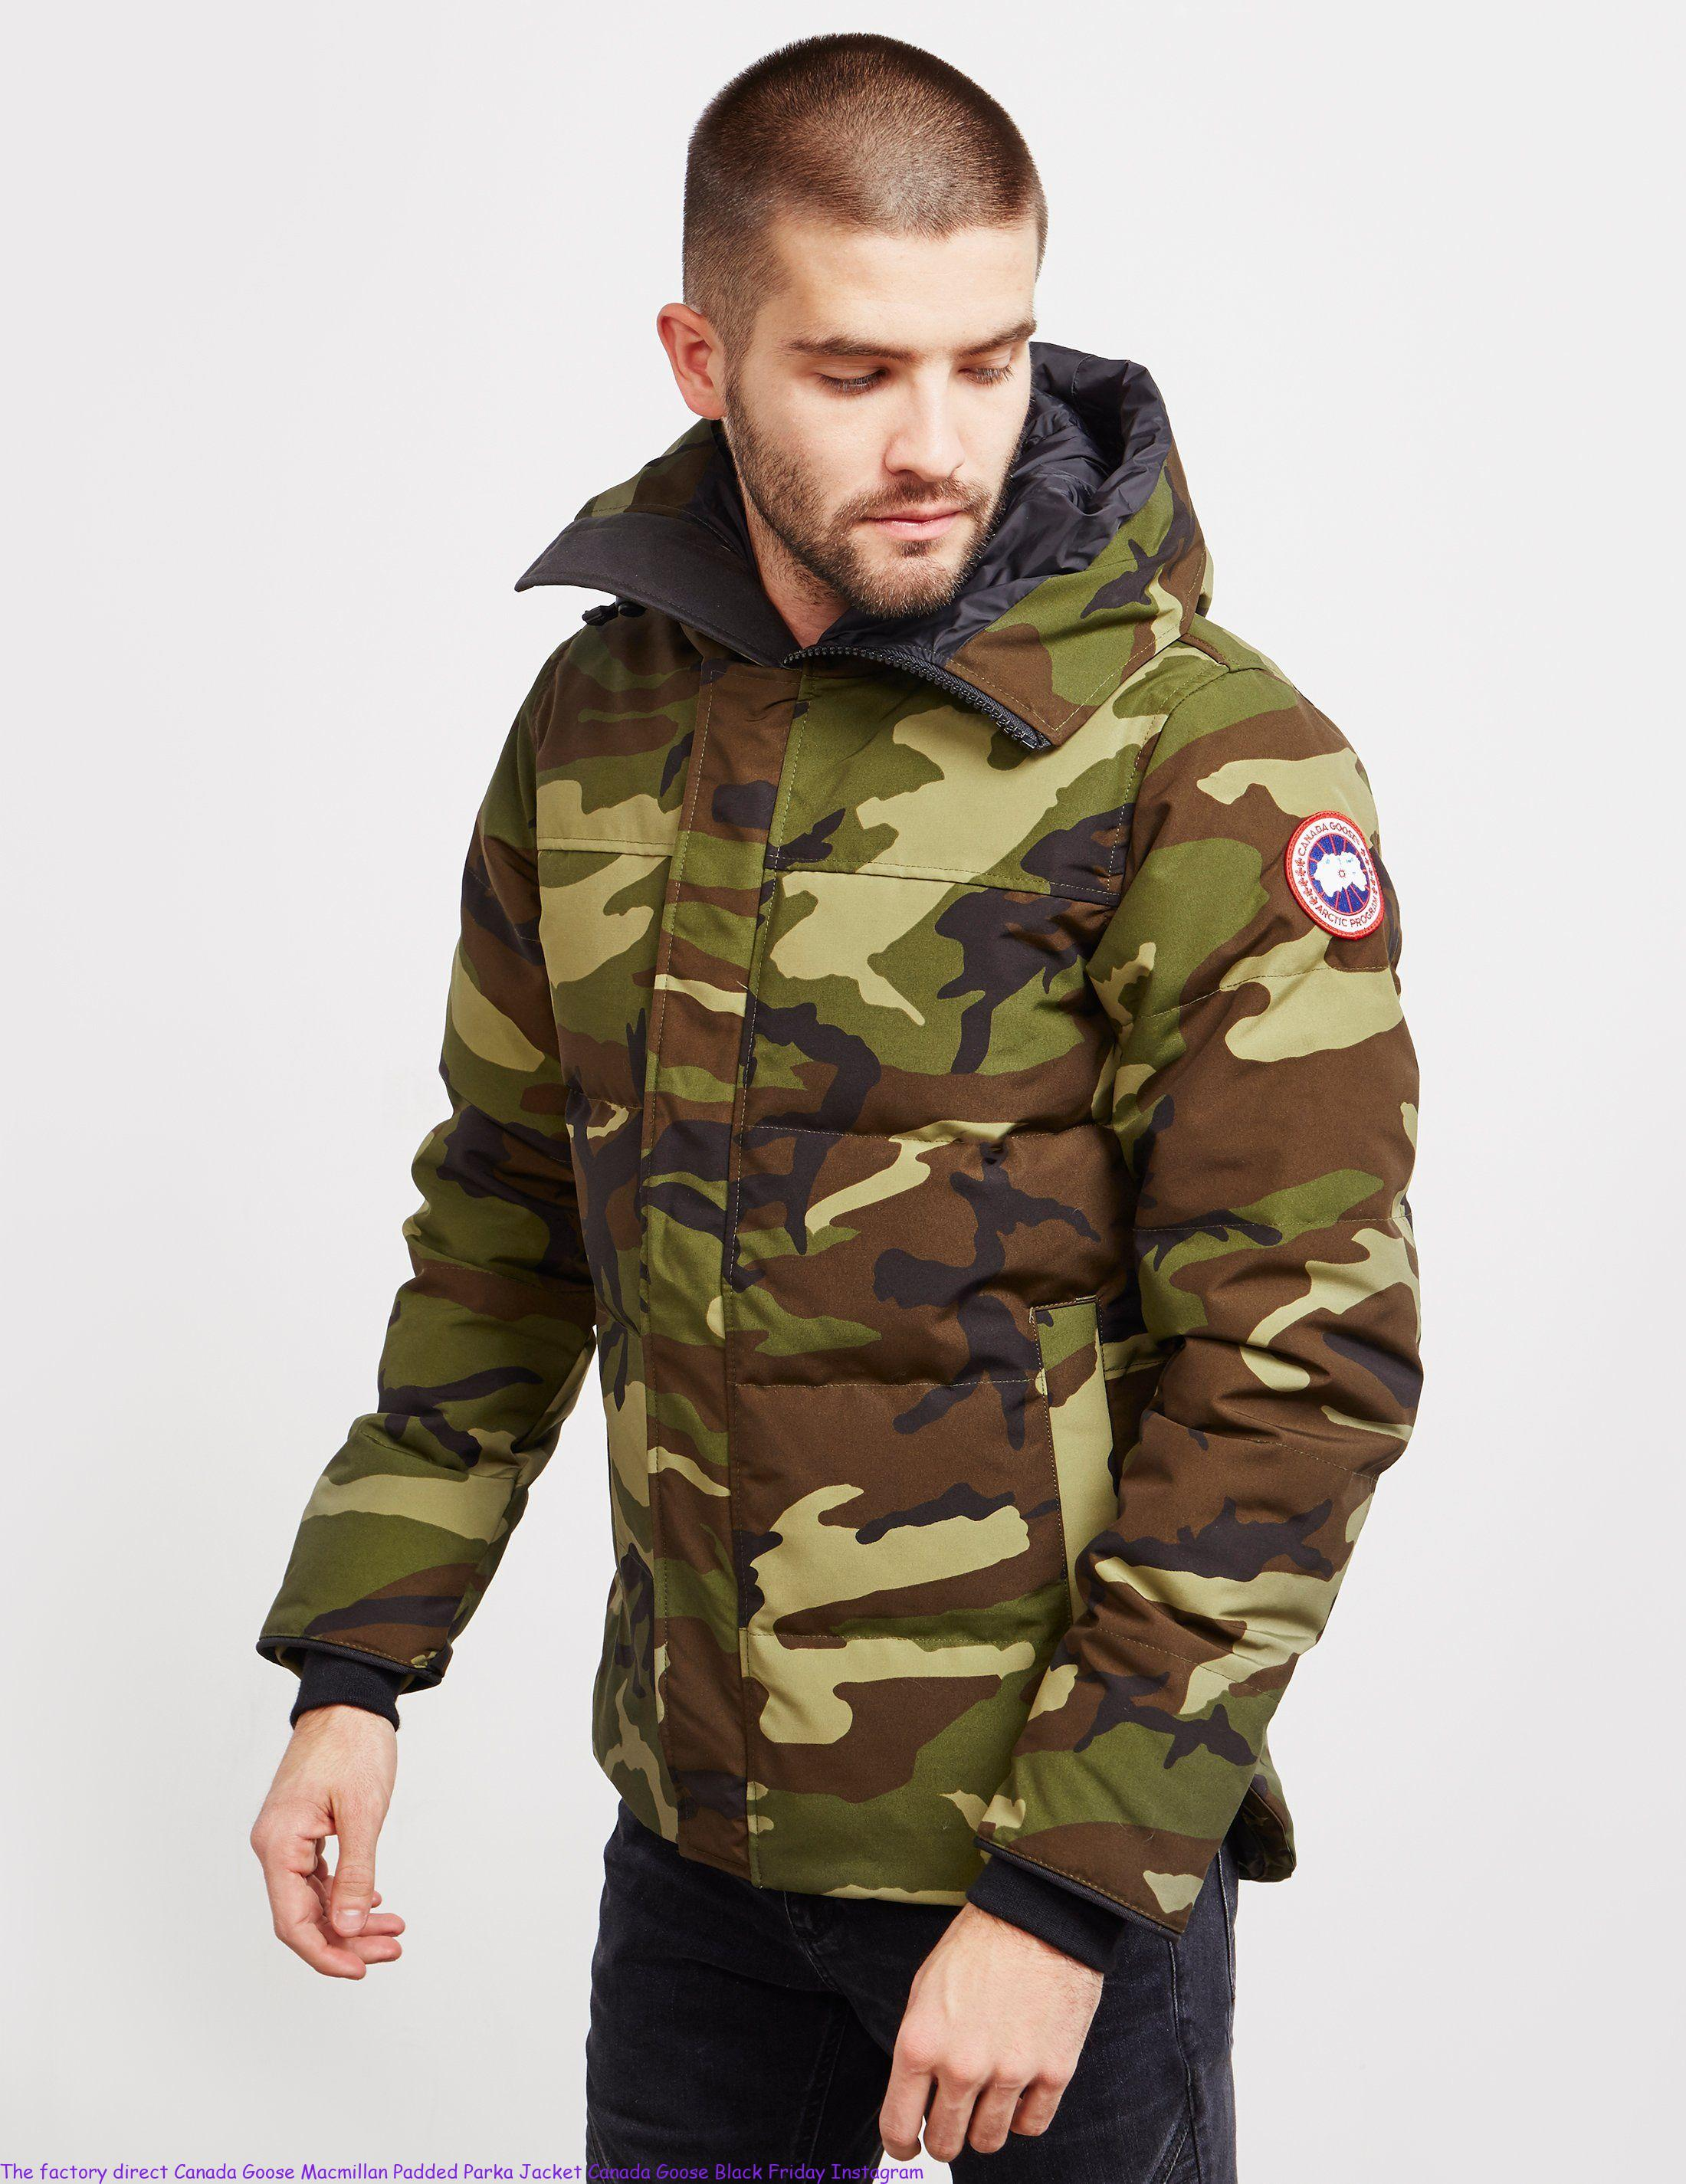 0591b9ccfd05d The factory direct Canada Goose Macmillan Padded Parka Jacket Canada Goose  Black Friday Instagram – Cheap Canada Goose Outlet Sale   Goose You